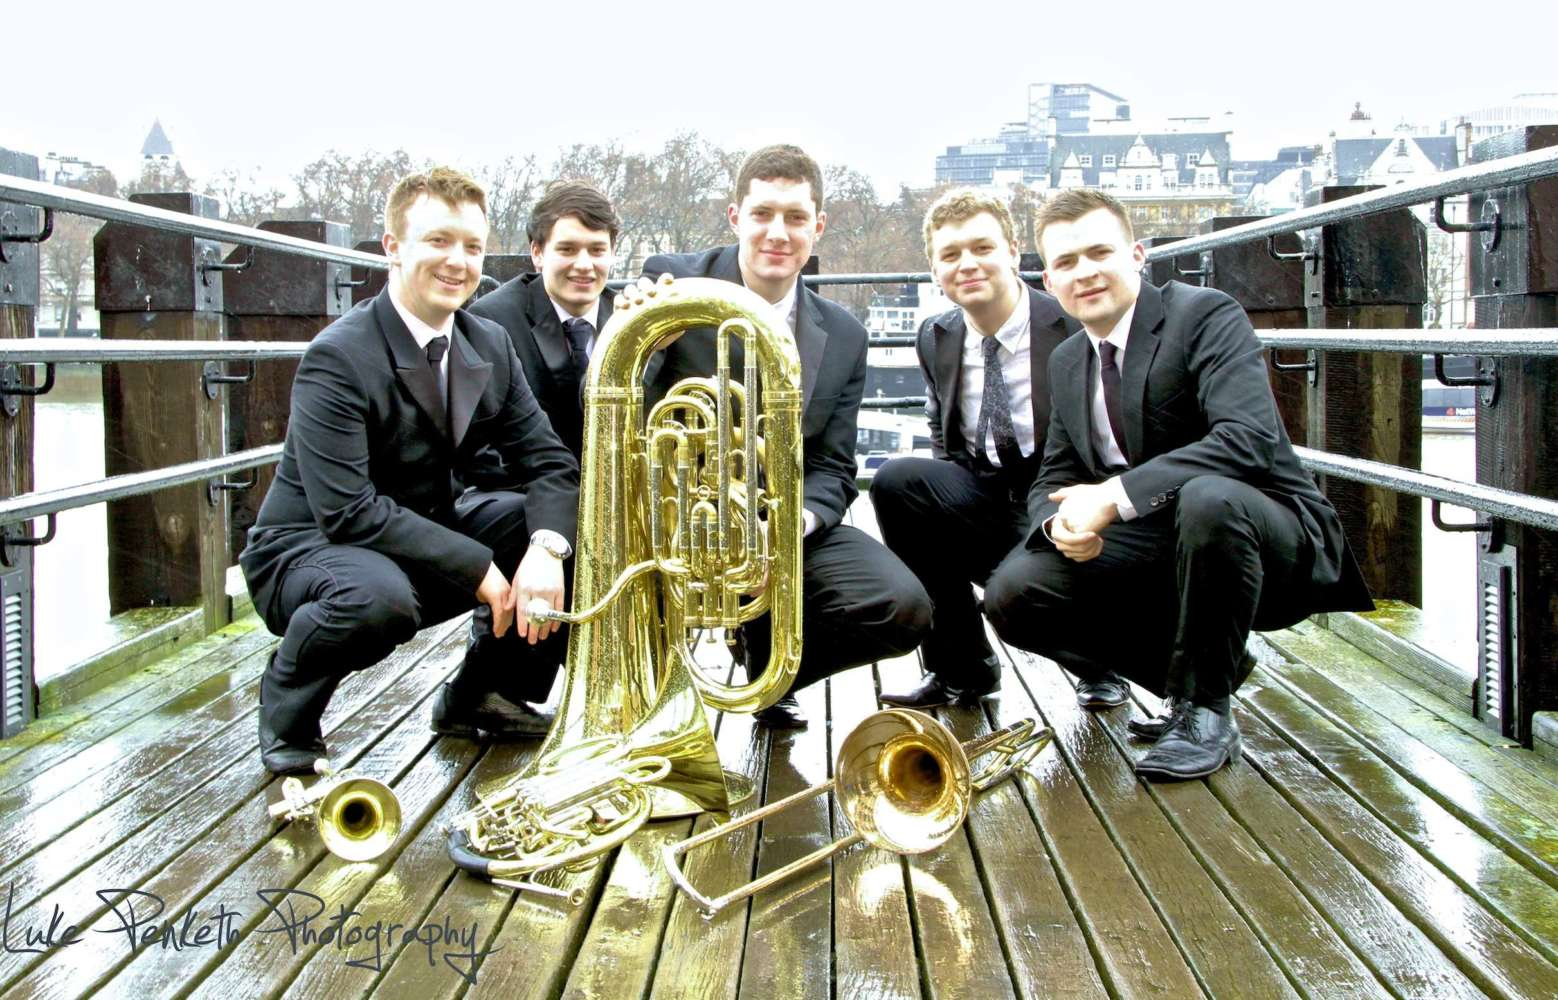 The London Brass Collective Main